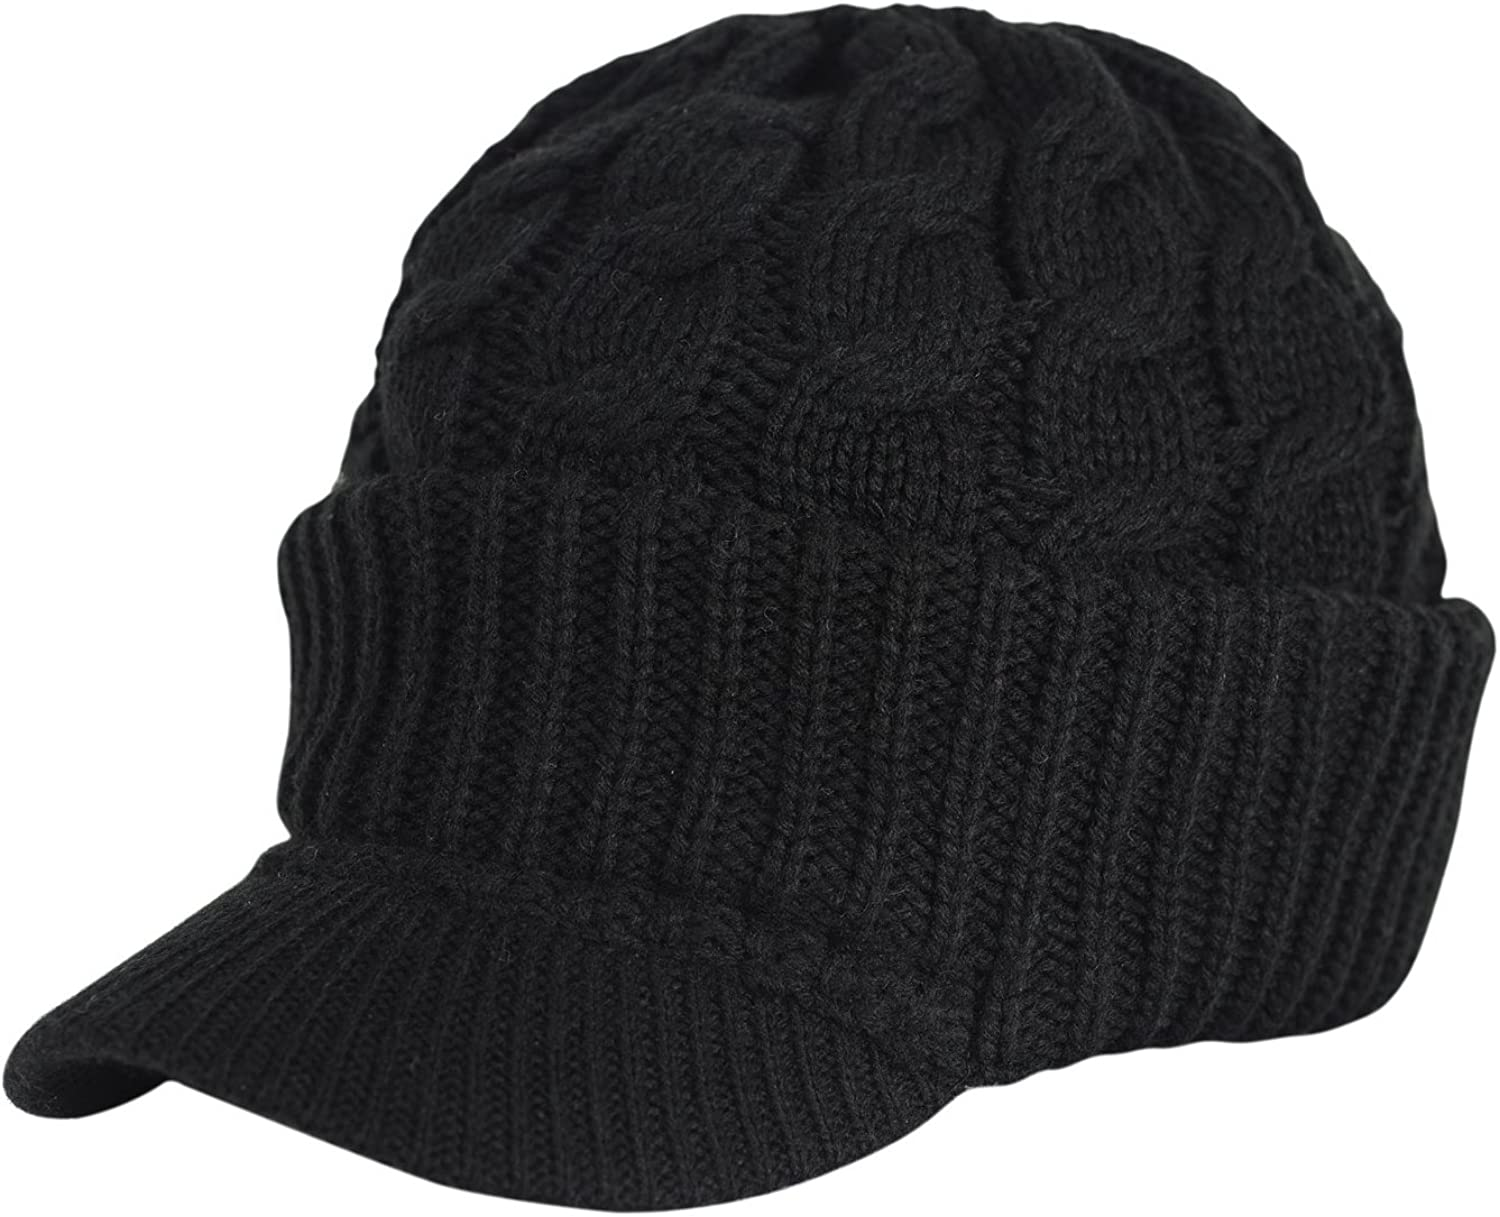 FashionTS Newsboy Sales results No. 1 Mesa Mall Cable Knitted Hat Brim Winter with Visor Warm